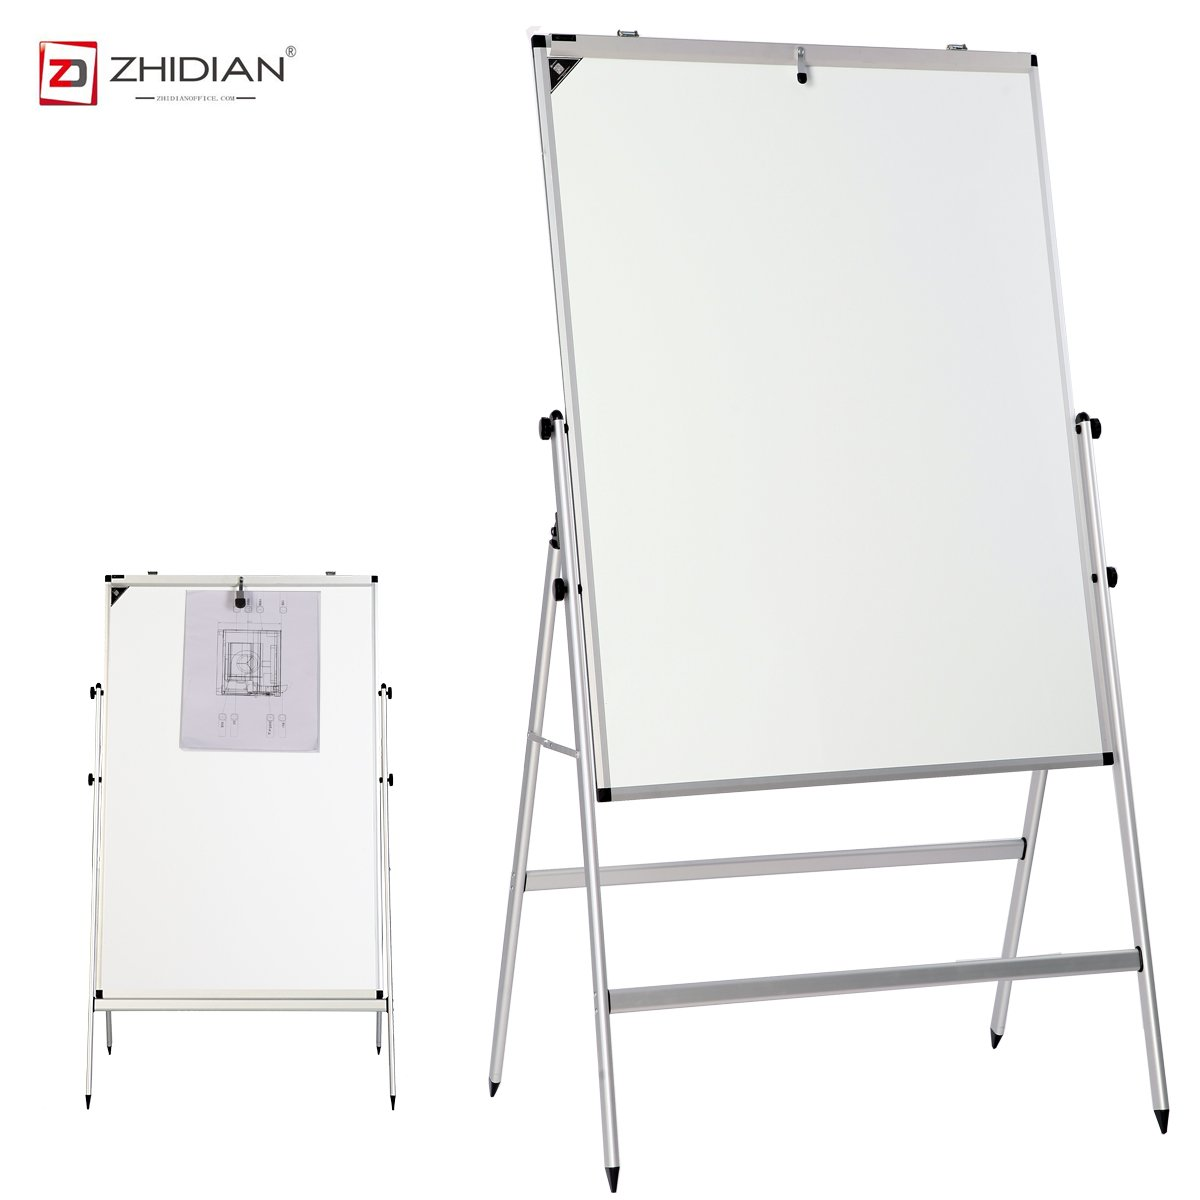 ZHIDIAN Folding Slide Rail Height Adjustment Aluminum Alloy Magnetic Dry Erase Board Easel, Bulletin Board White Boards, Silver Frame (36Hx24W Inches, Erect type)